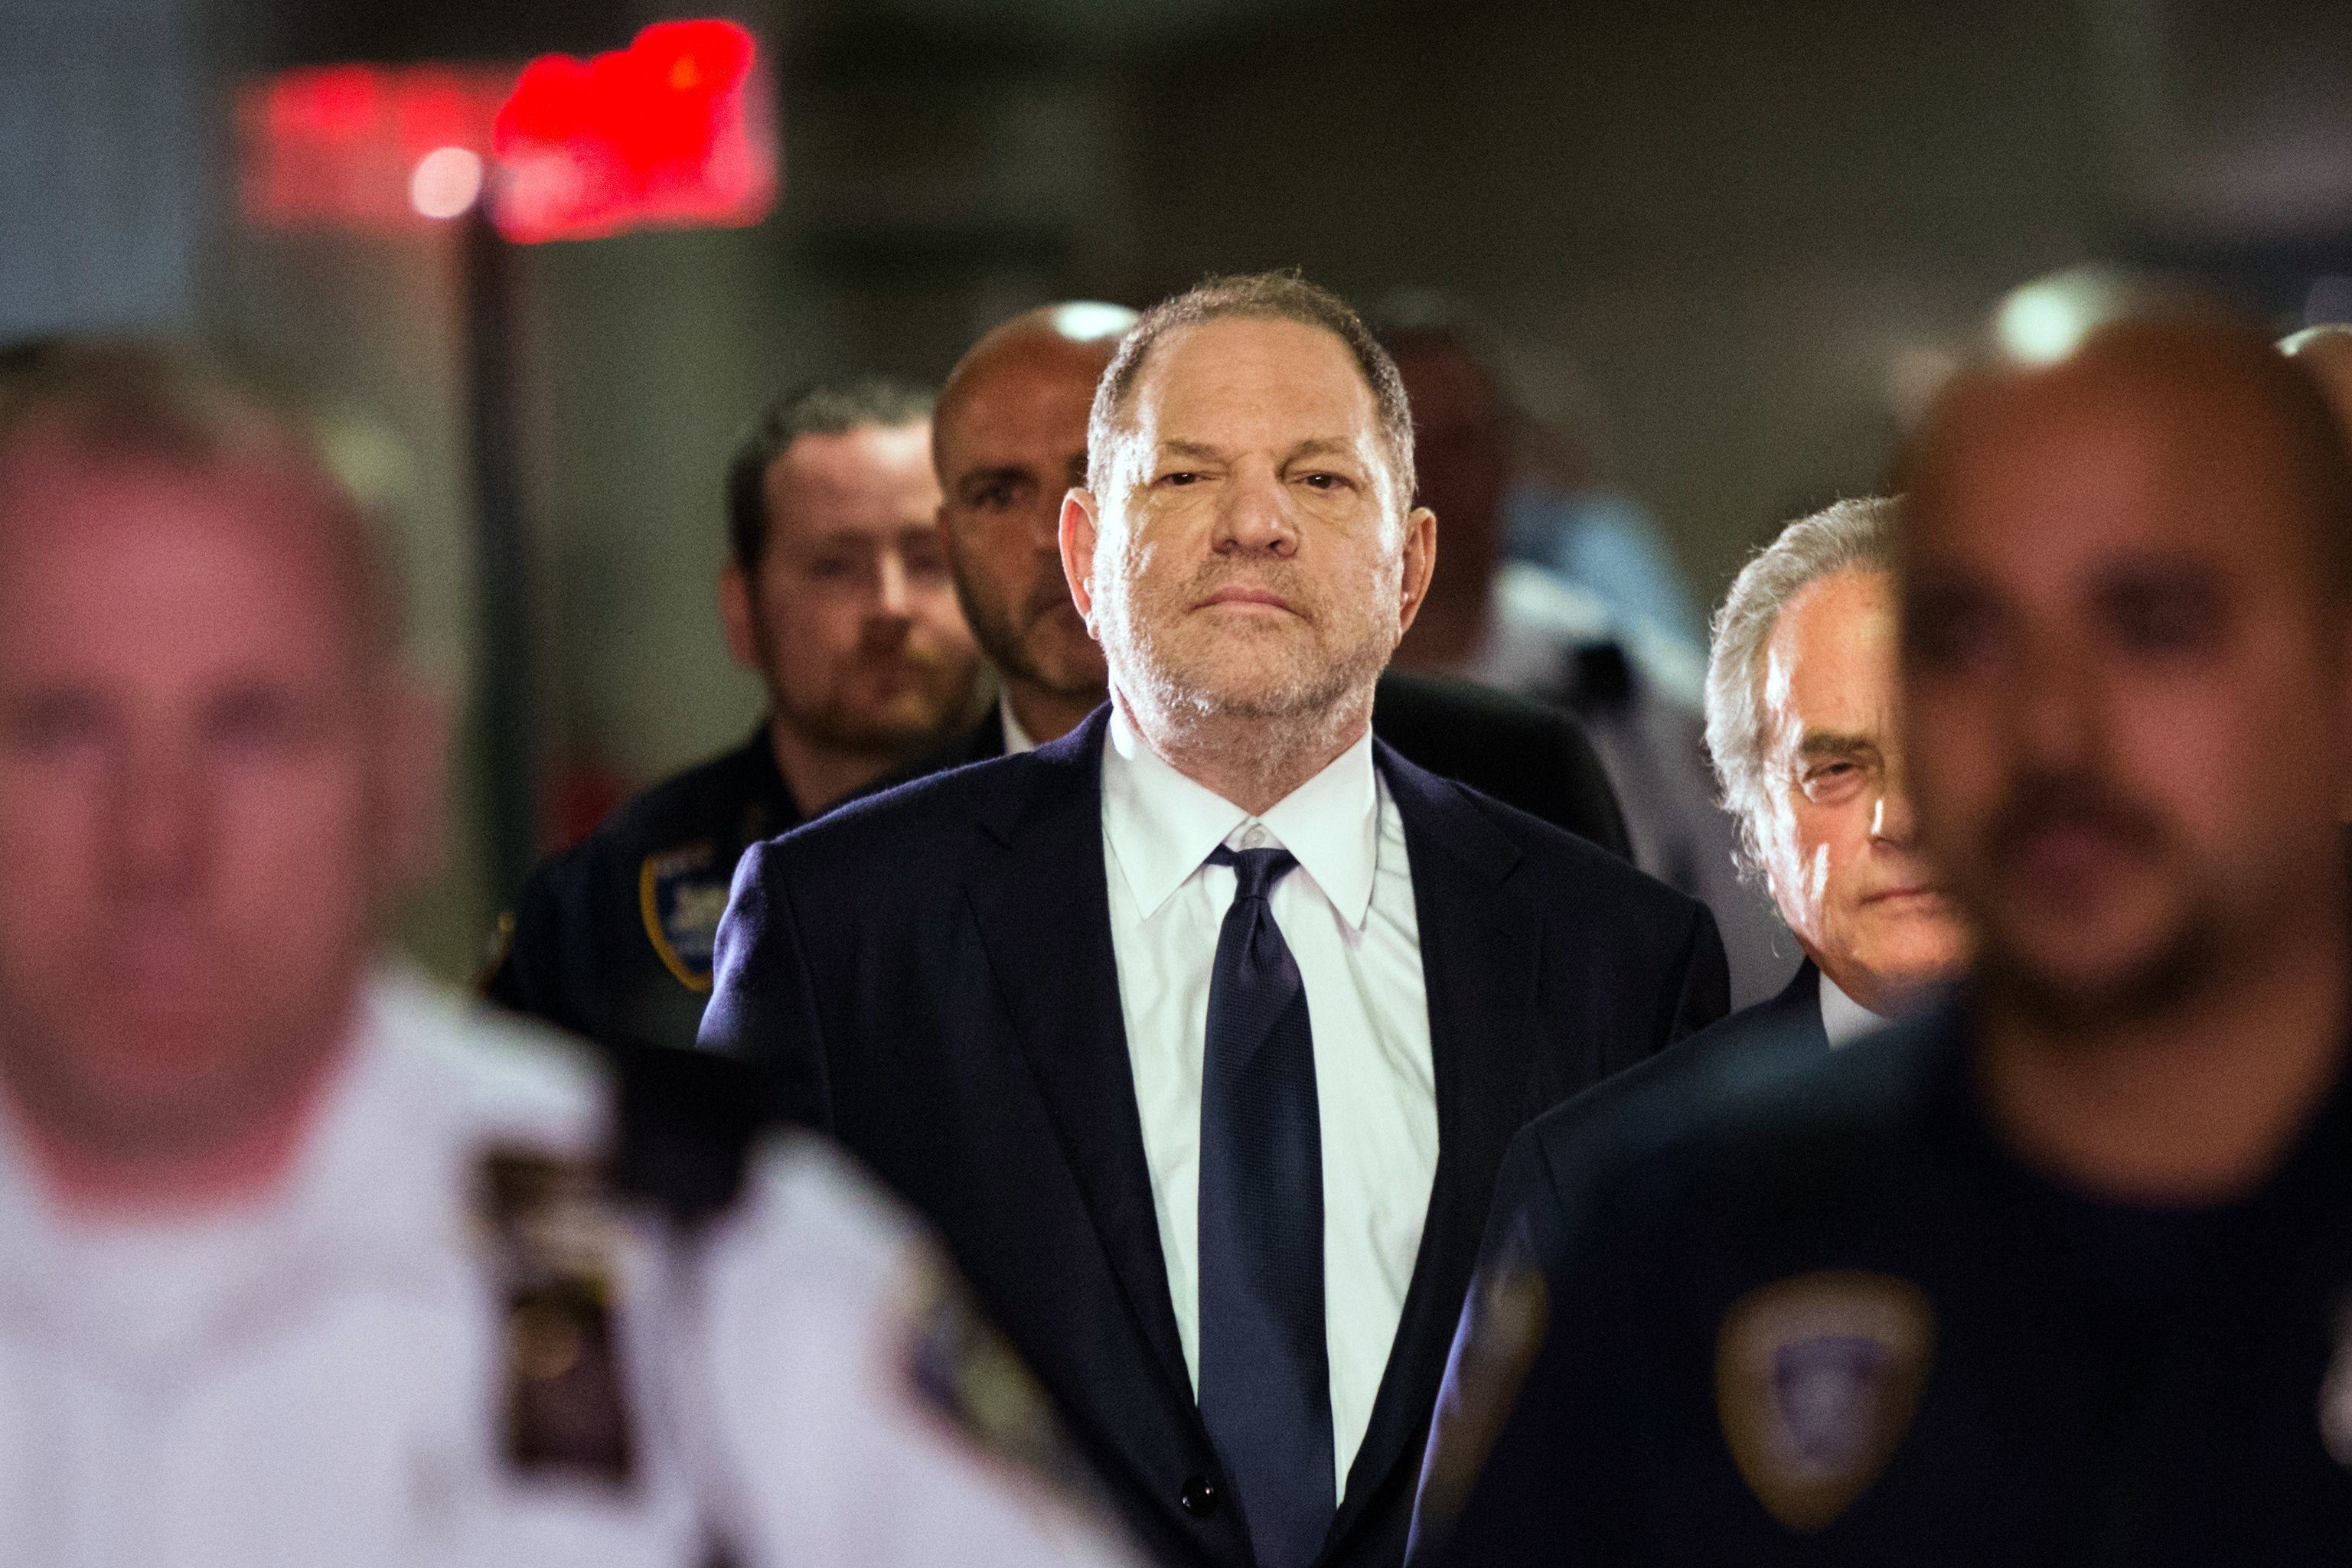 Harvey Weinstein indicted on new accusations of sexual assault